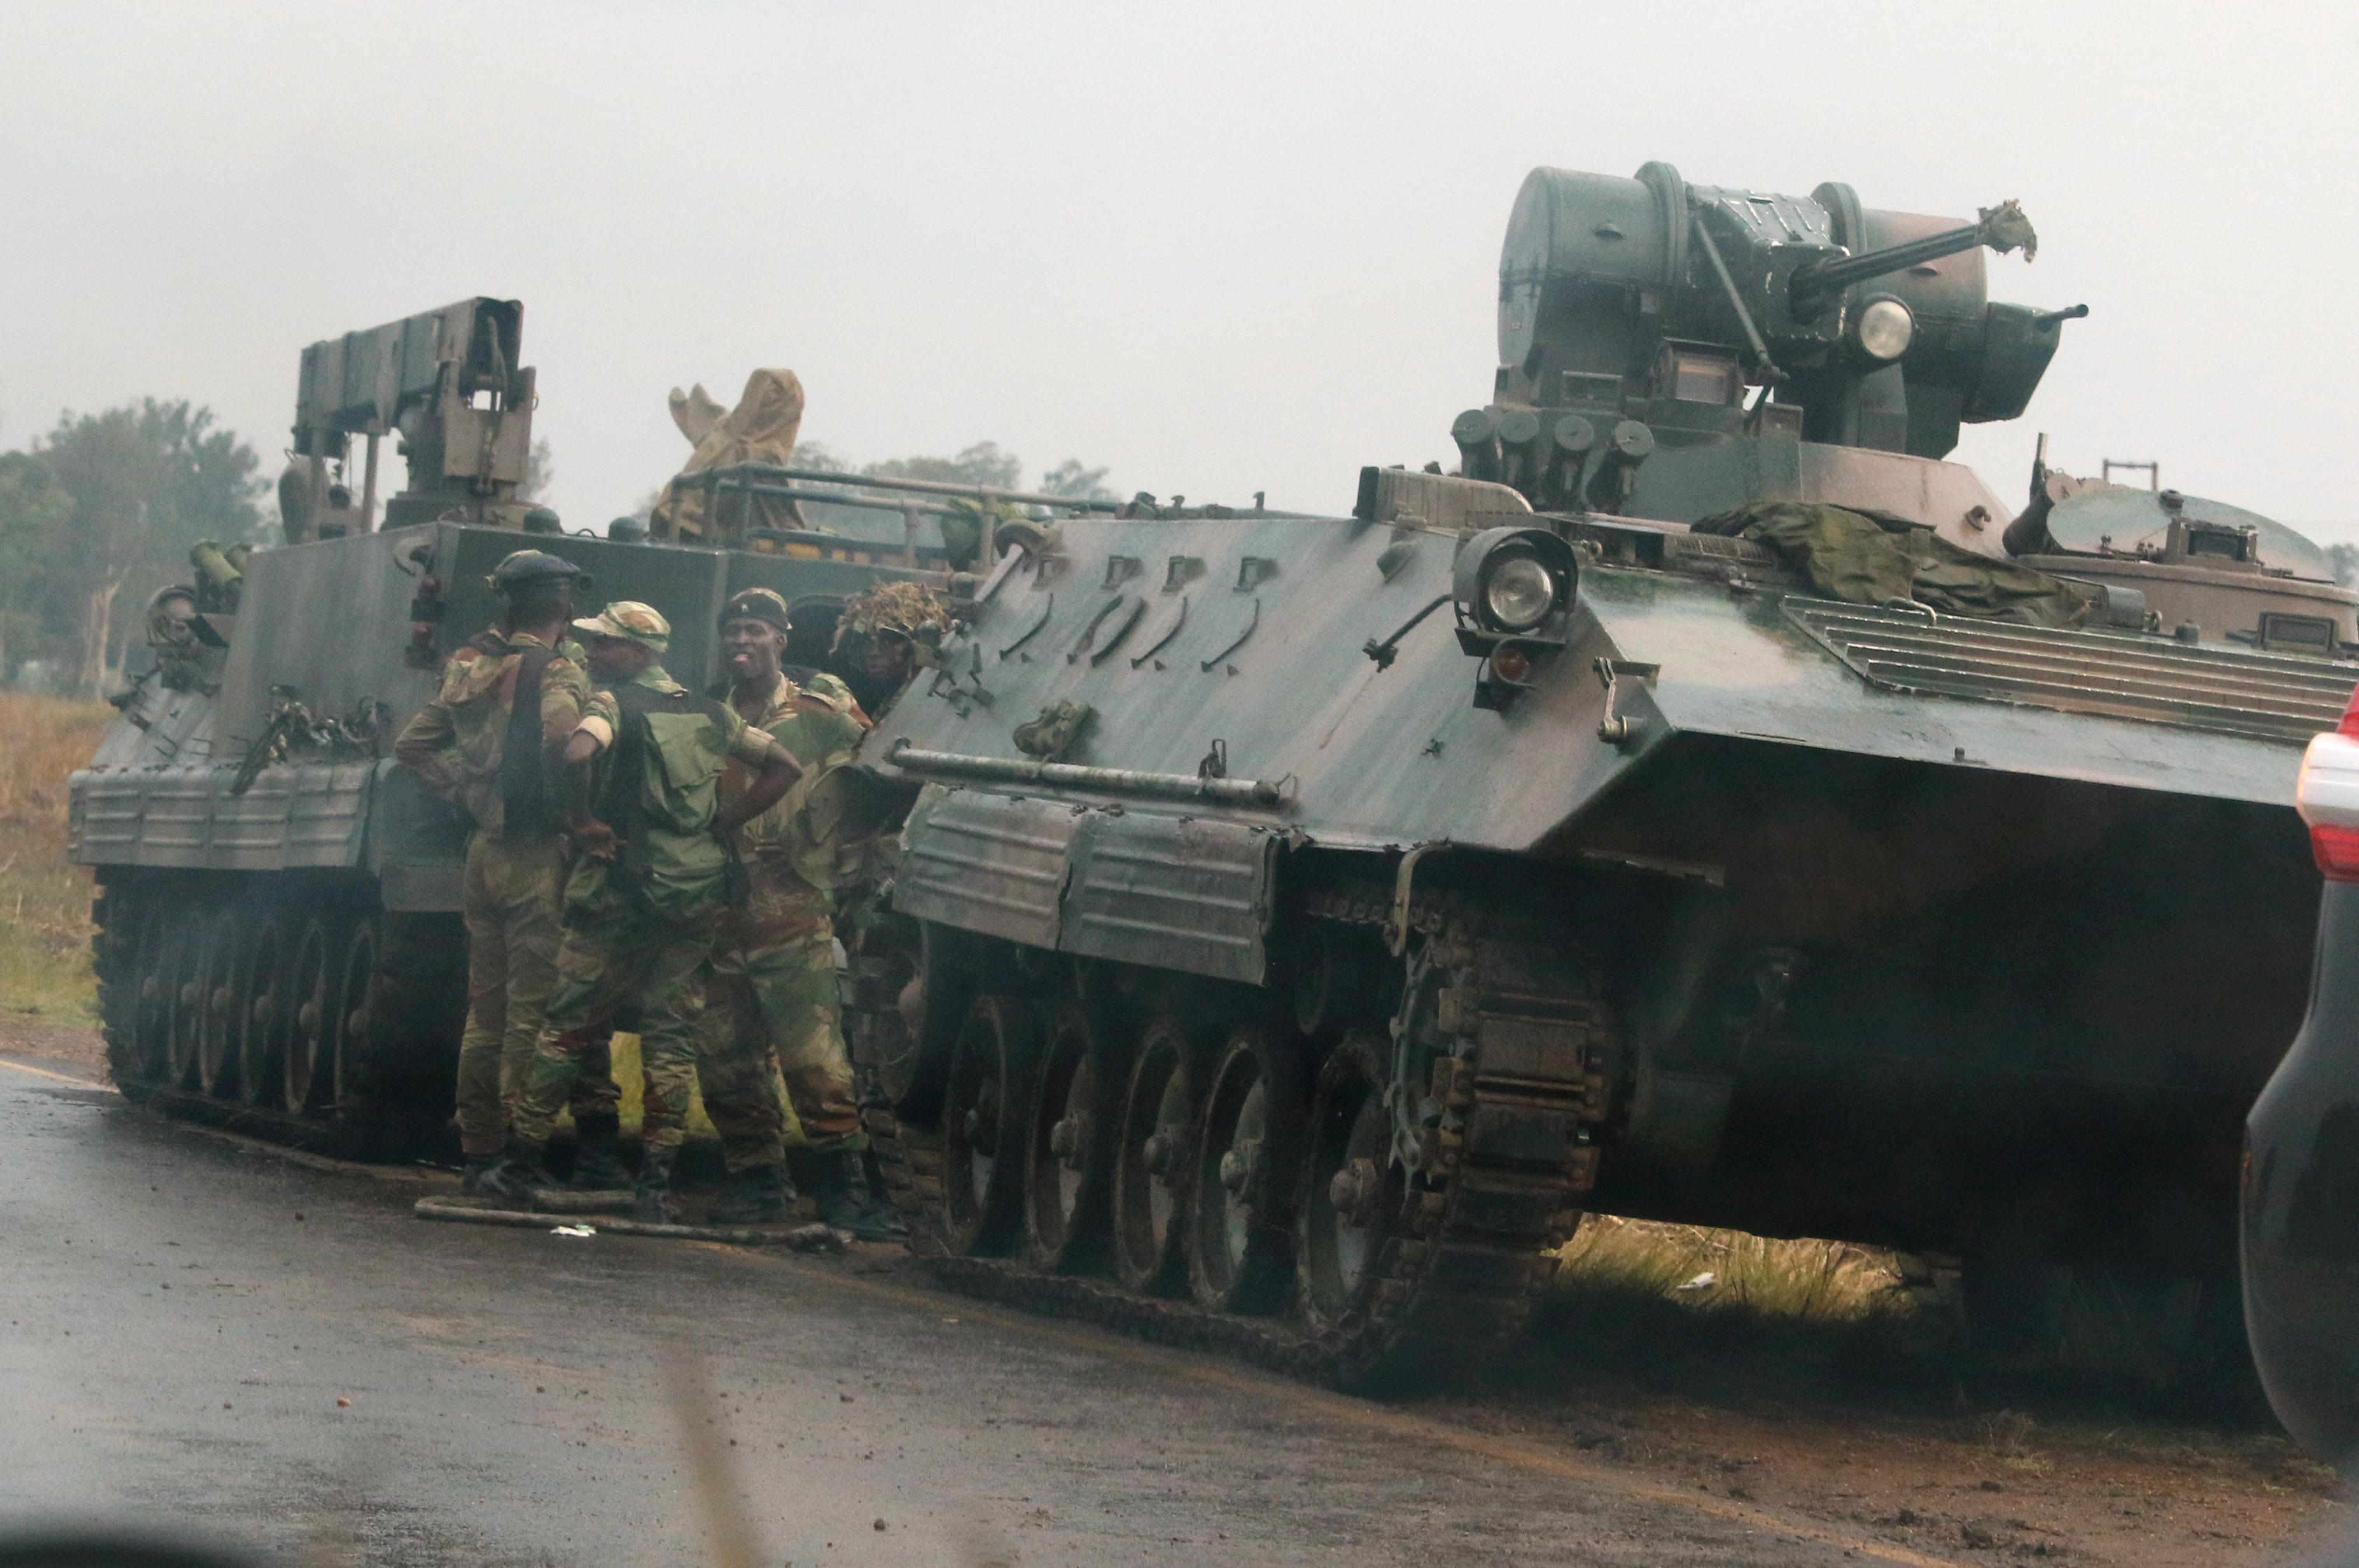 Soldiers stand beside military vehicles outside Harare, Zimbabwe, November 14,2017. Philimon Bulawayo